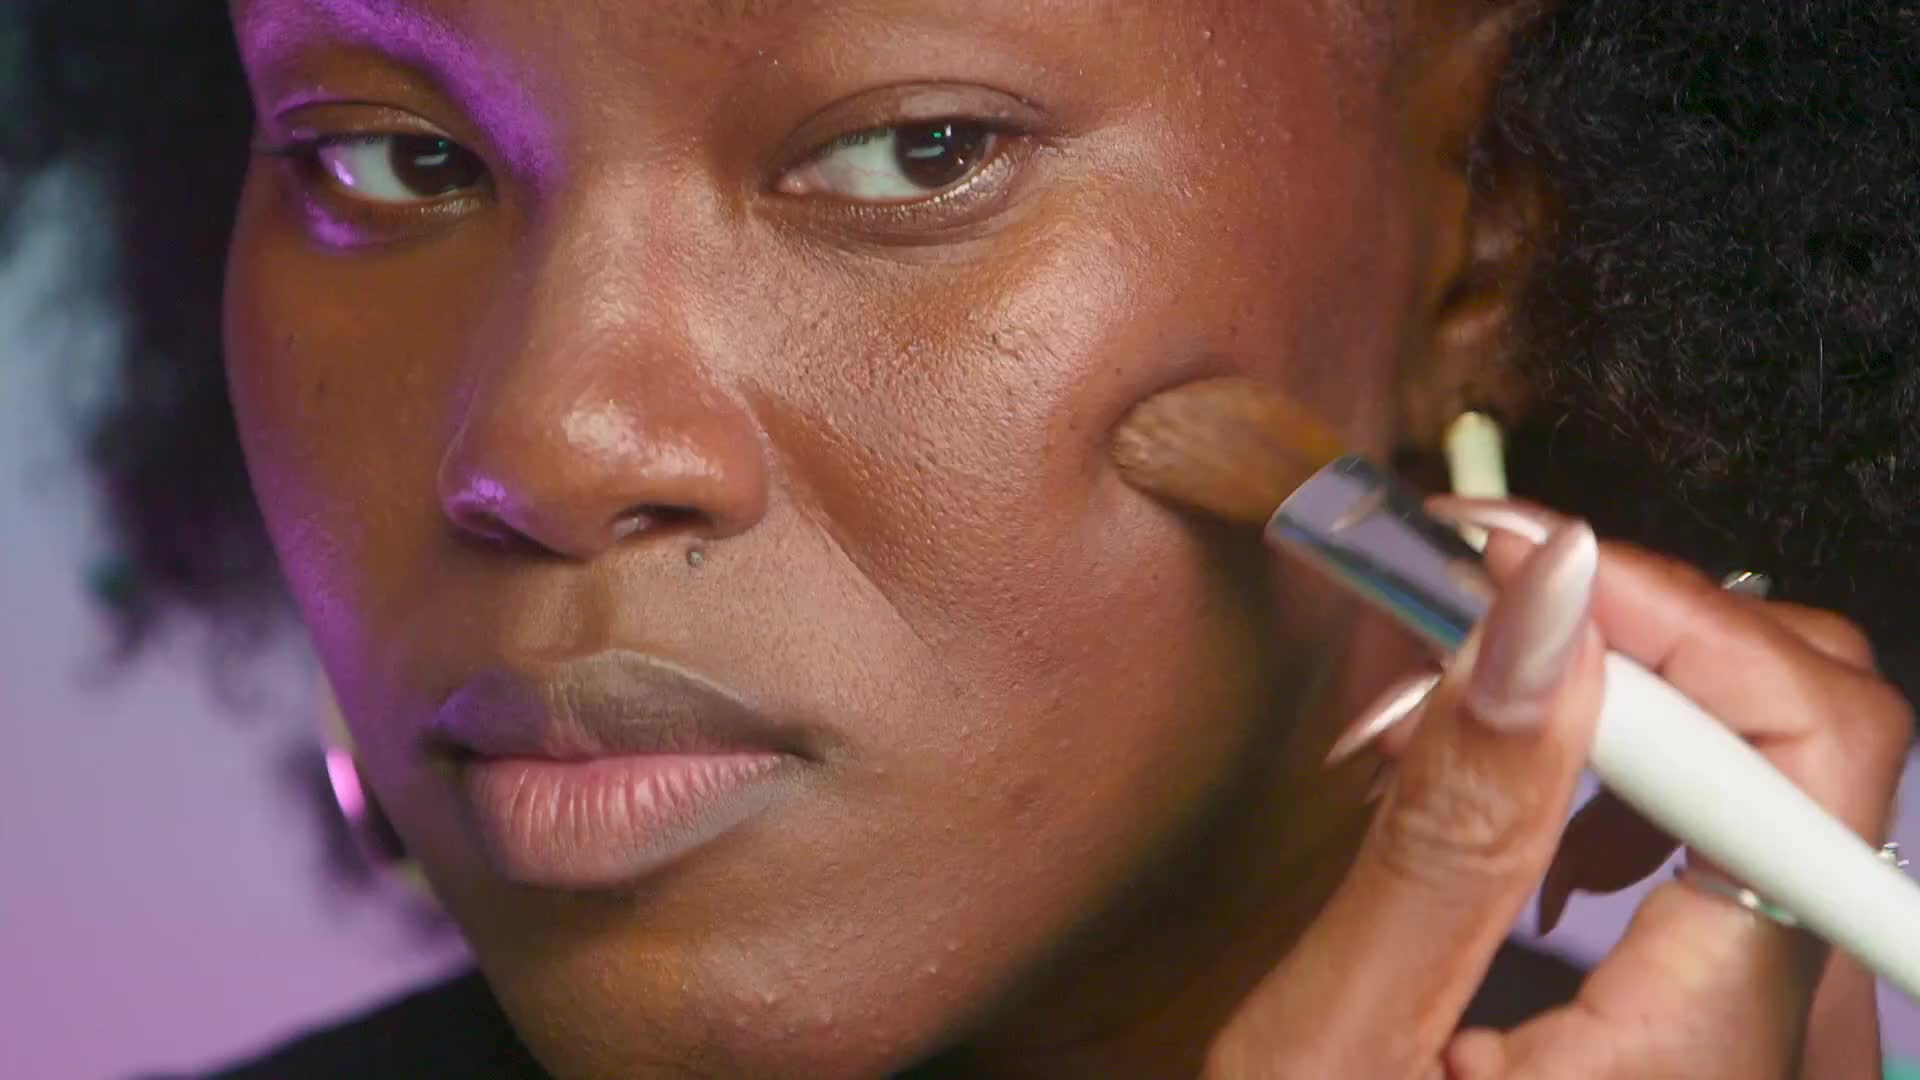 The Ultimate Black Panther Inspired Makeup Tutorial for Halloween